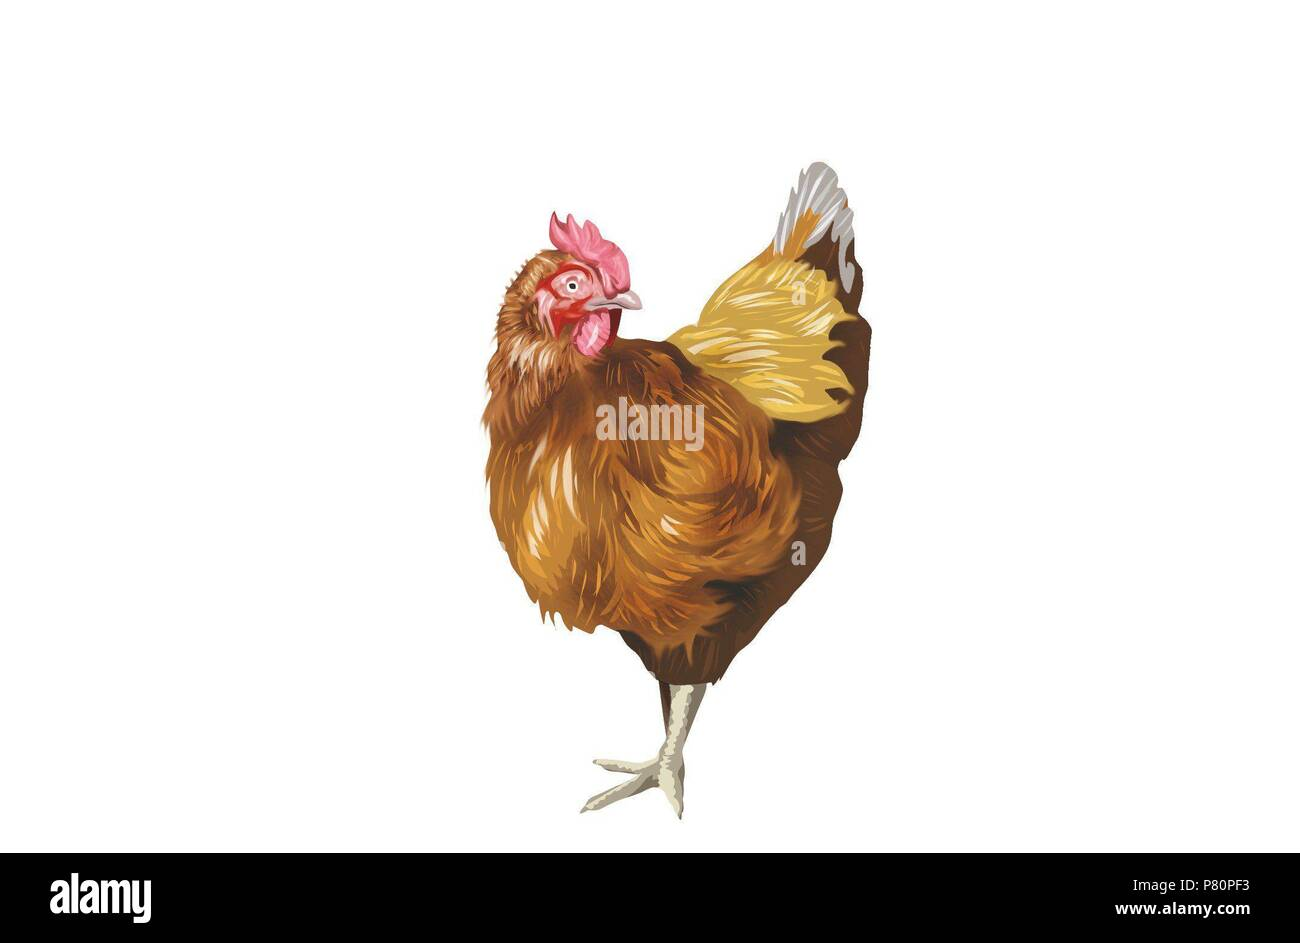 Chicken. - Stock Image